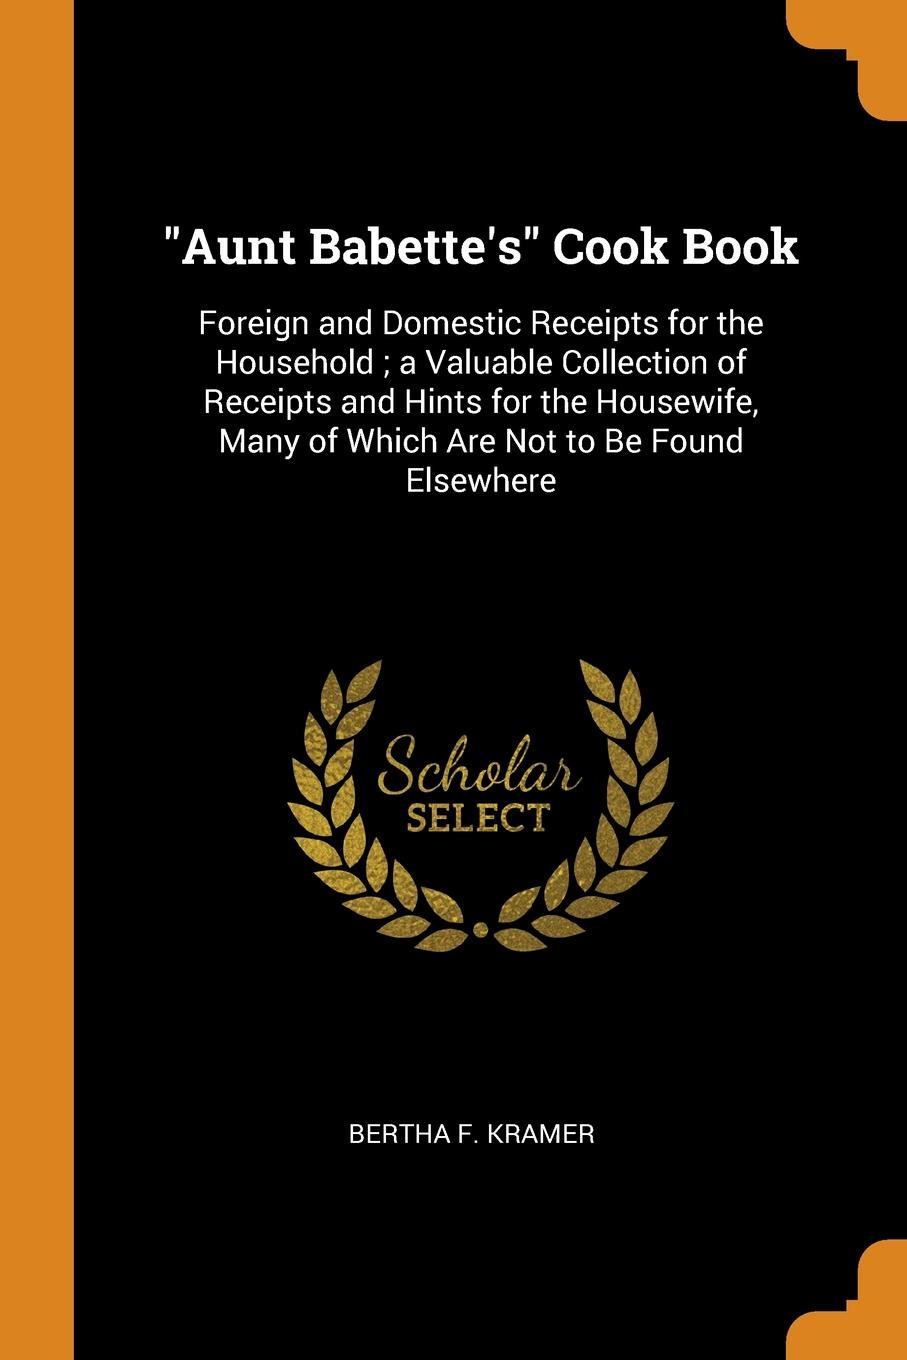 """Книга """"Aunt Babette.s"""" Cook Book. Foreign and Domestic Receipts for the Household ; a Valuable Collection of Receipts and Hints for the Housewife, Many of Which Are Not to Be Found Elsewhere. Bertha F. Kramer"""